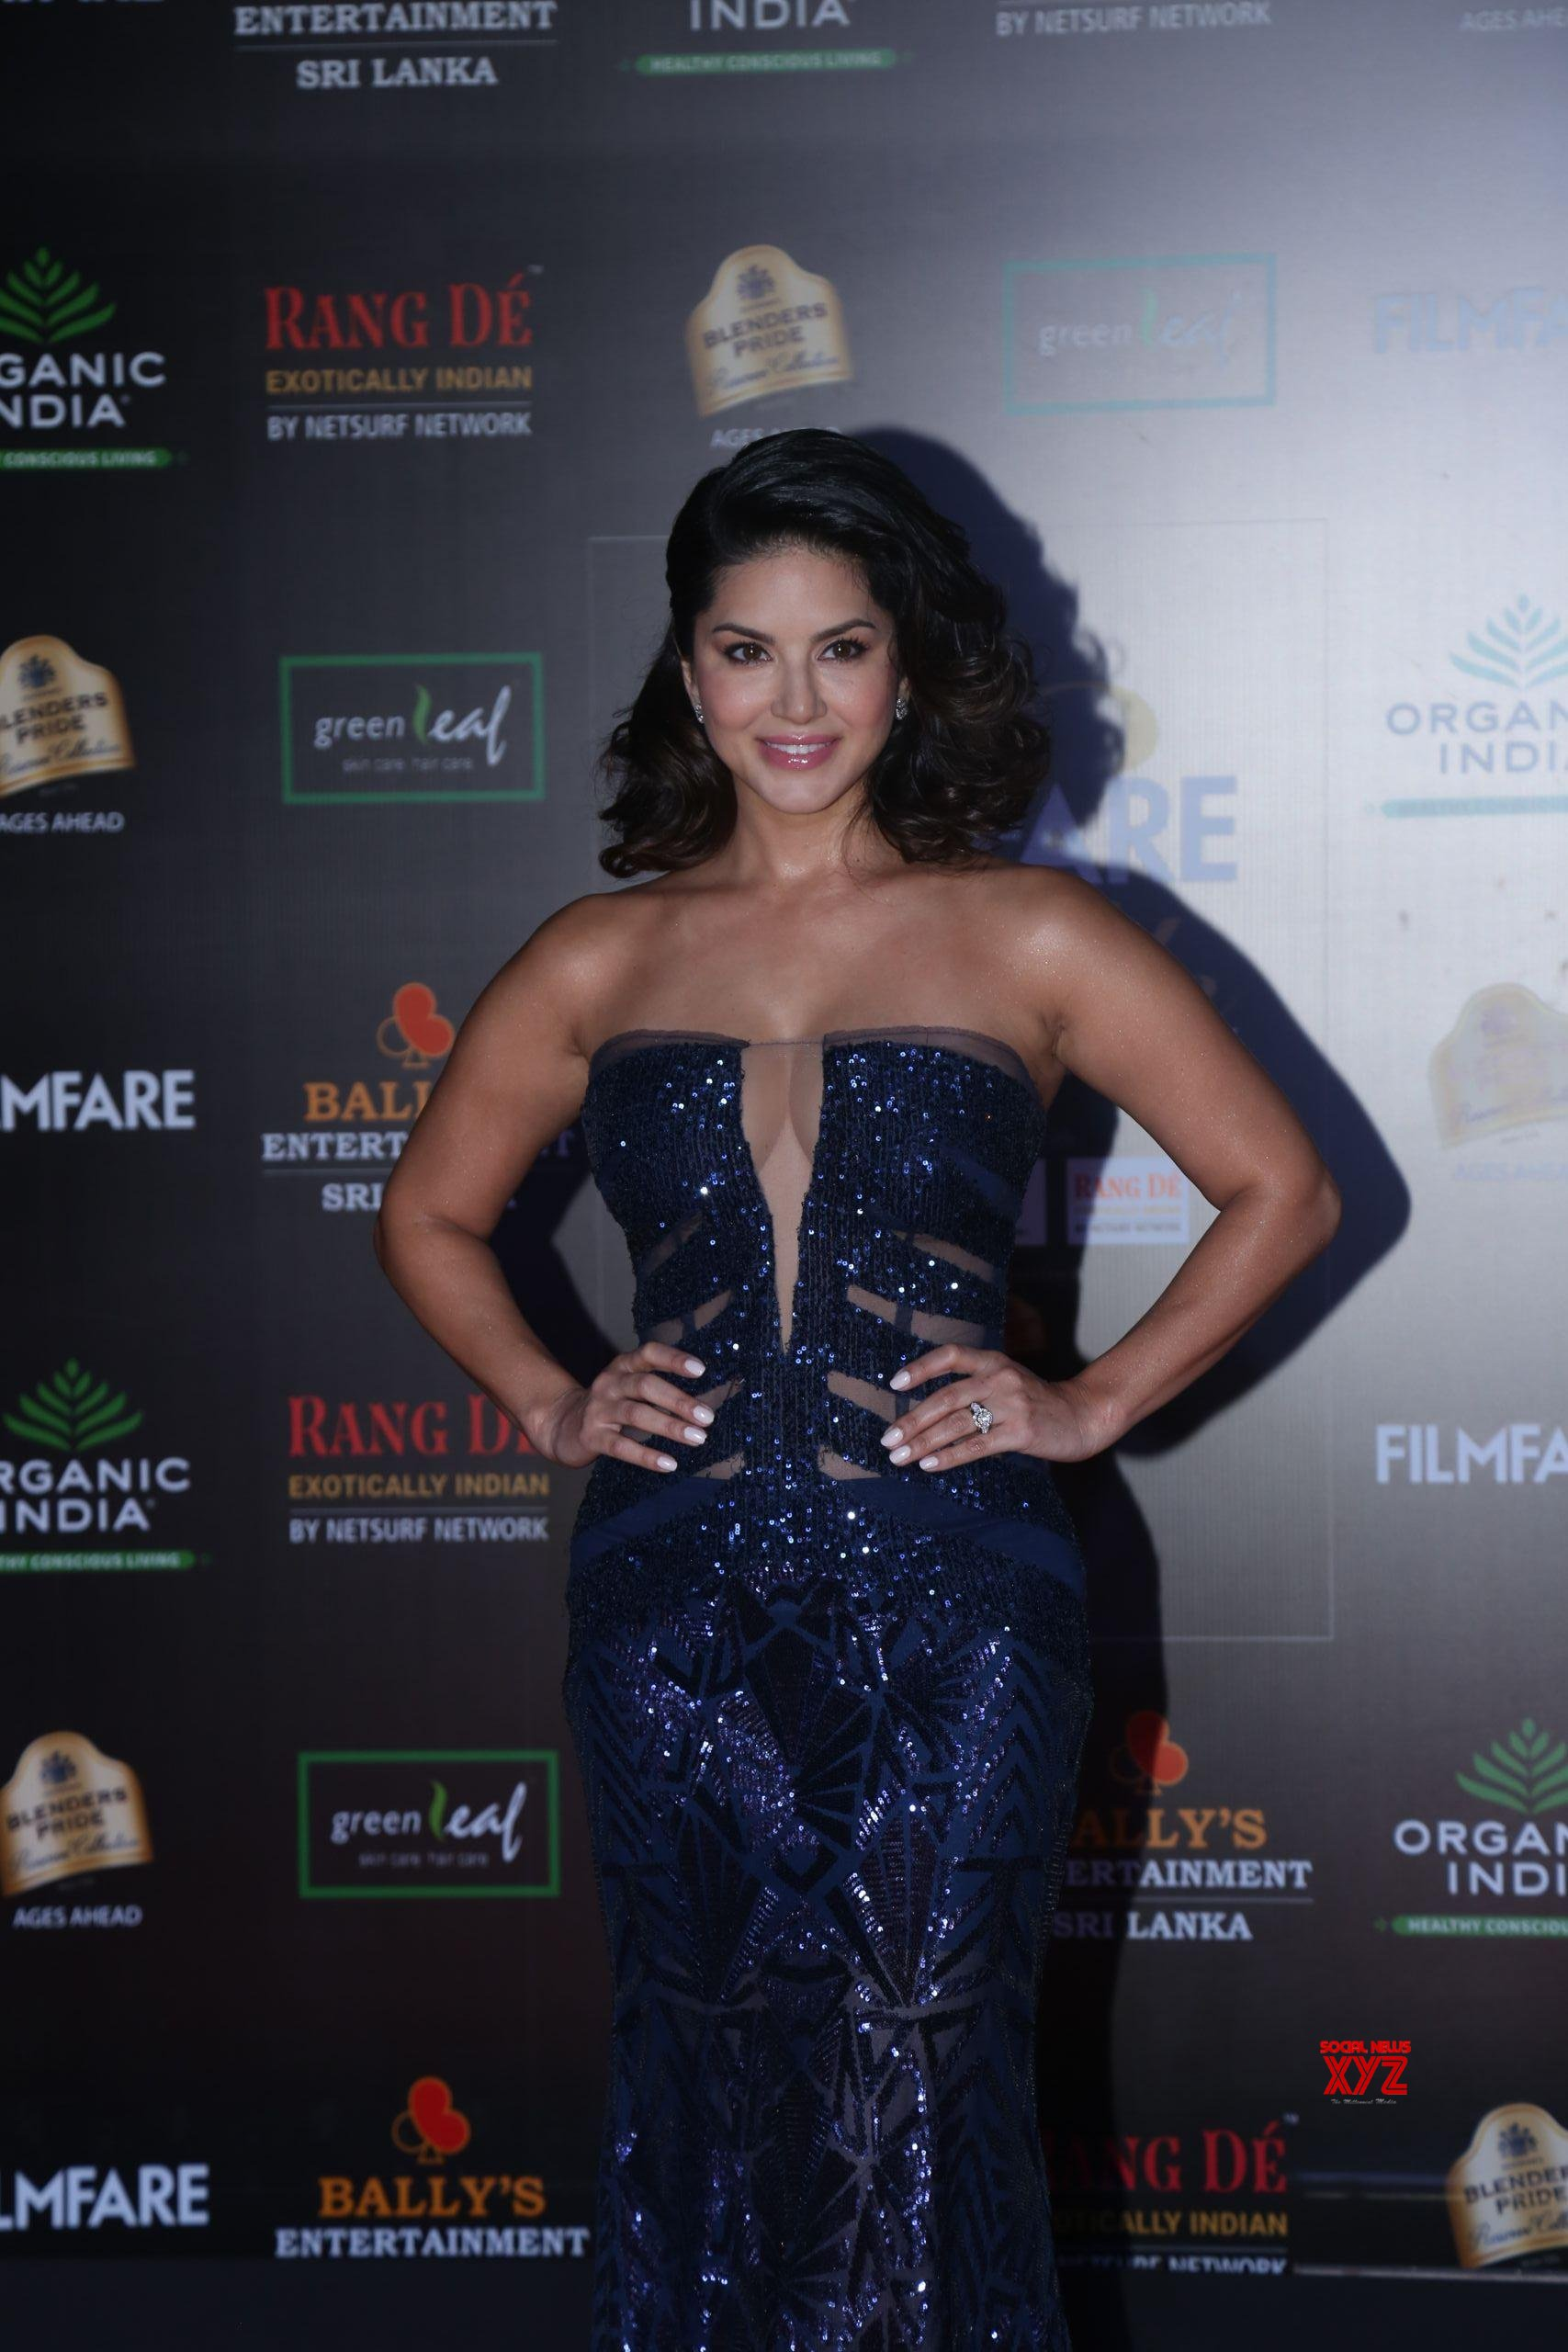 Actress Sunny Leone Hot HD Stills From Filmfare Glamour And Style Awards 2019 Red Carpet